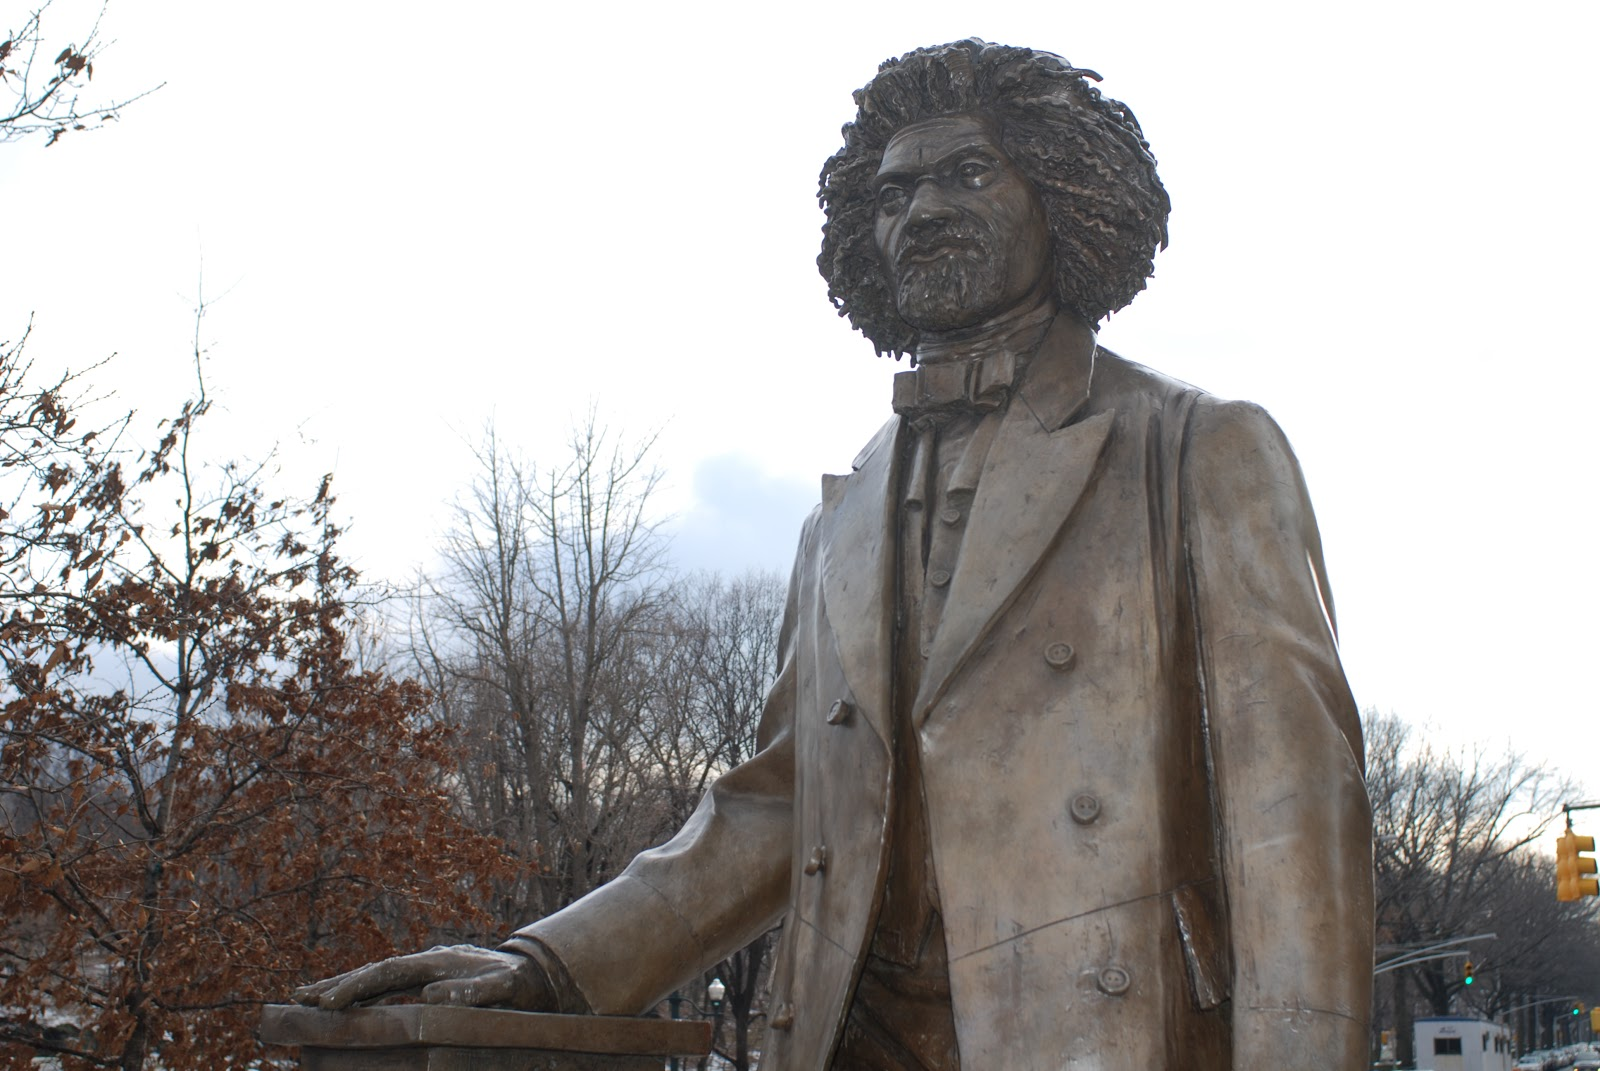 frederick douglass how i learned to Leaders can learn a lot about vision, recognition, and courage from abolitionist  frederick douglass.